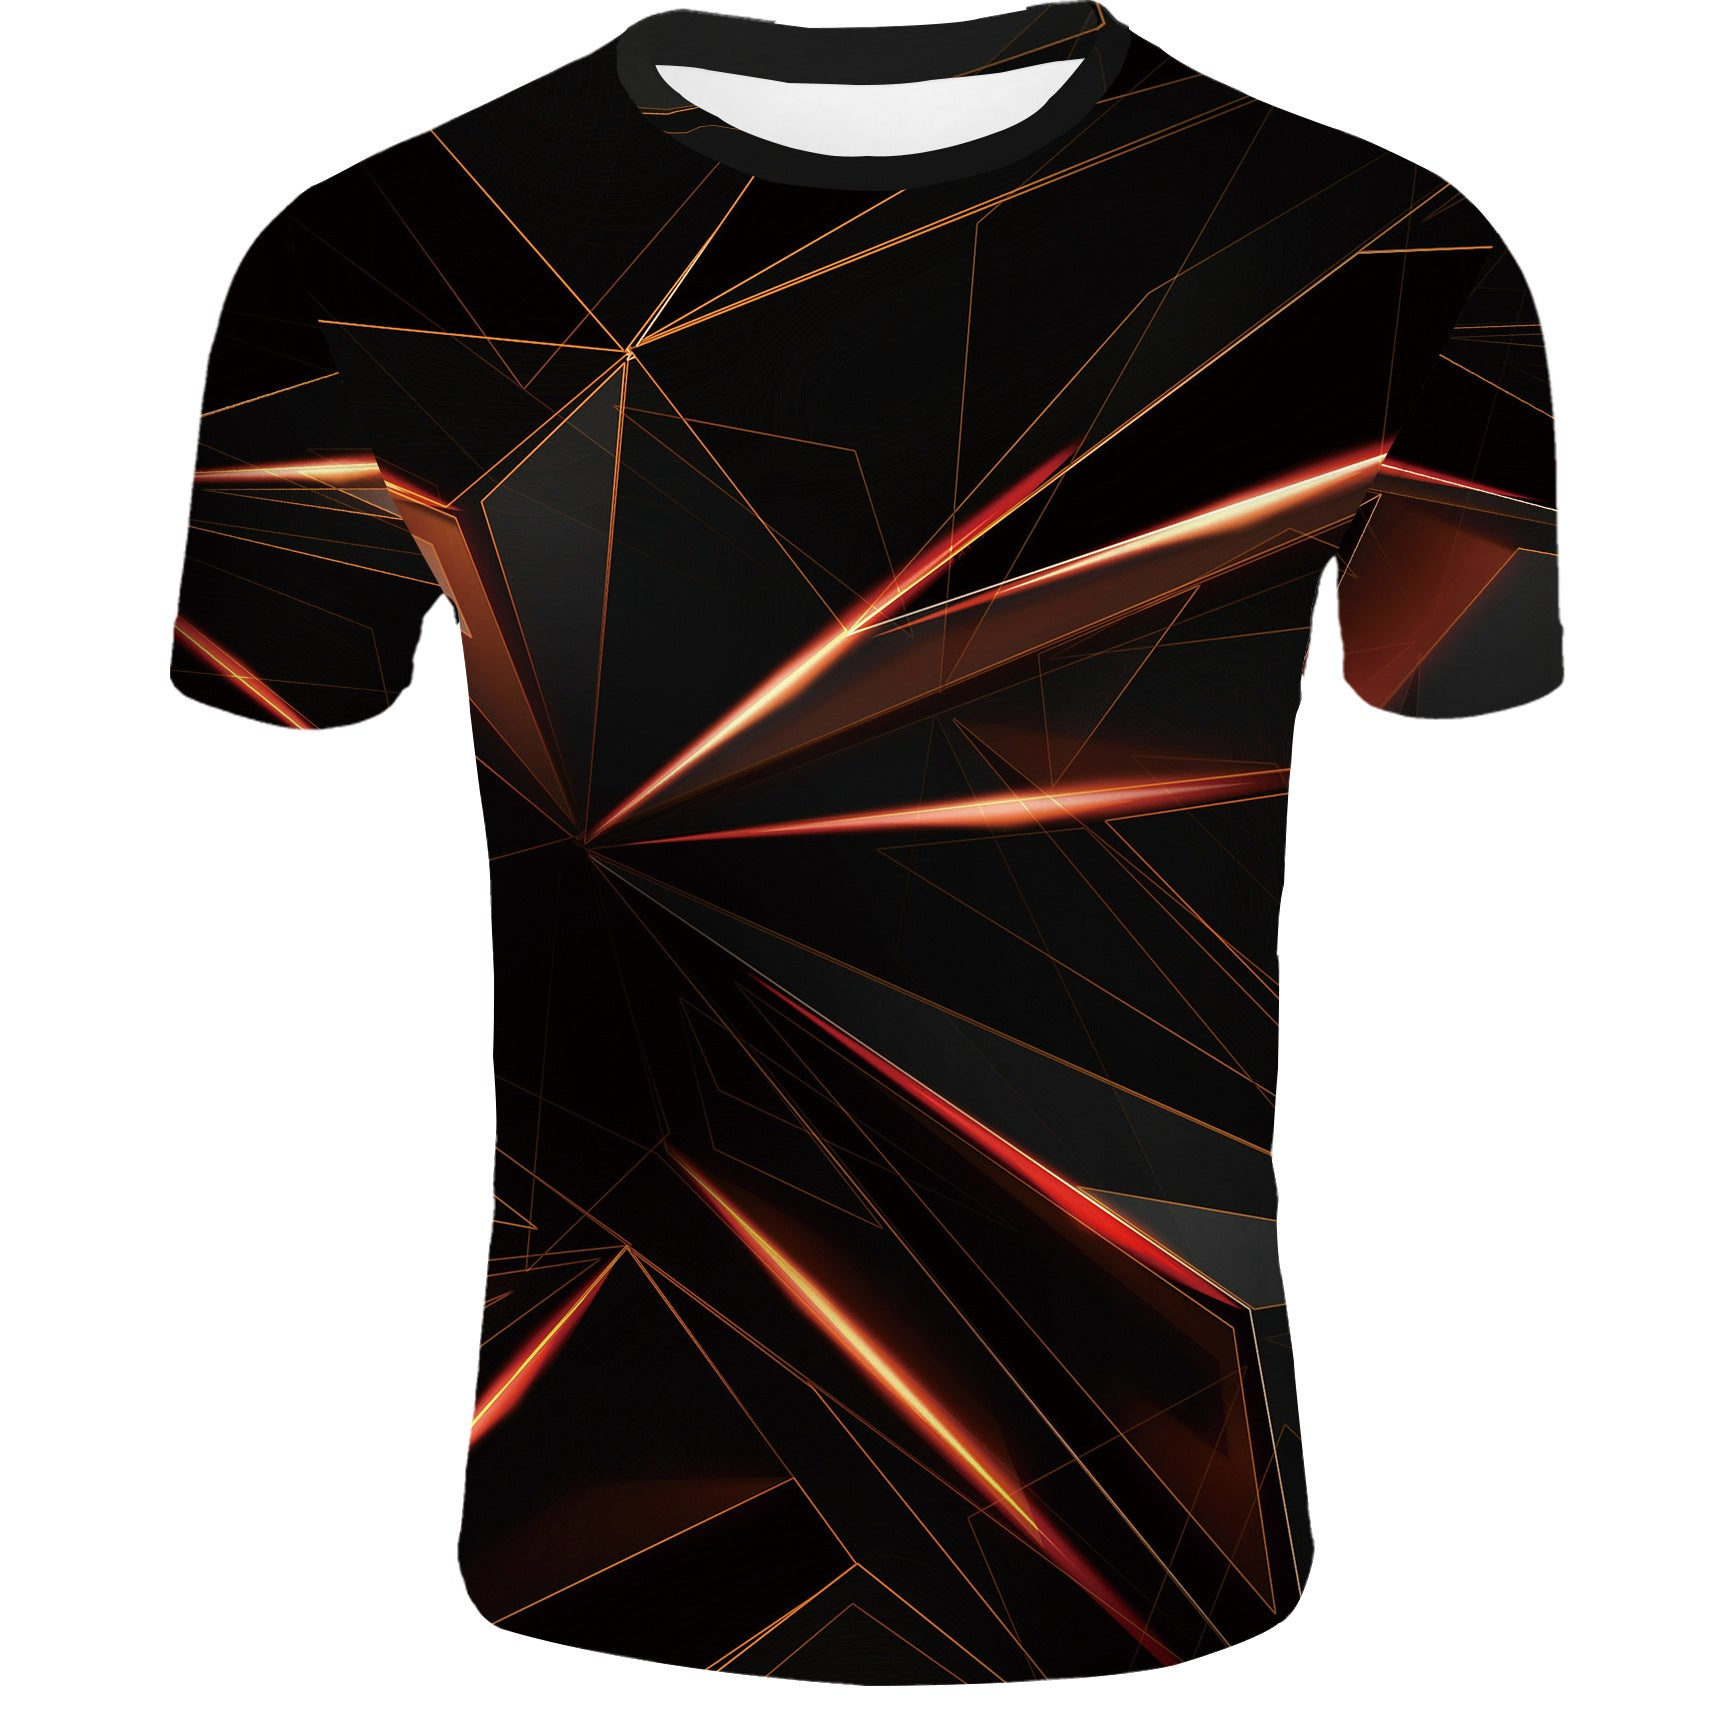 Men's 3D Polyester Printed T-Shirt Geometric TM0657